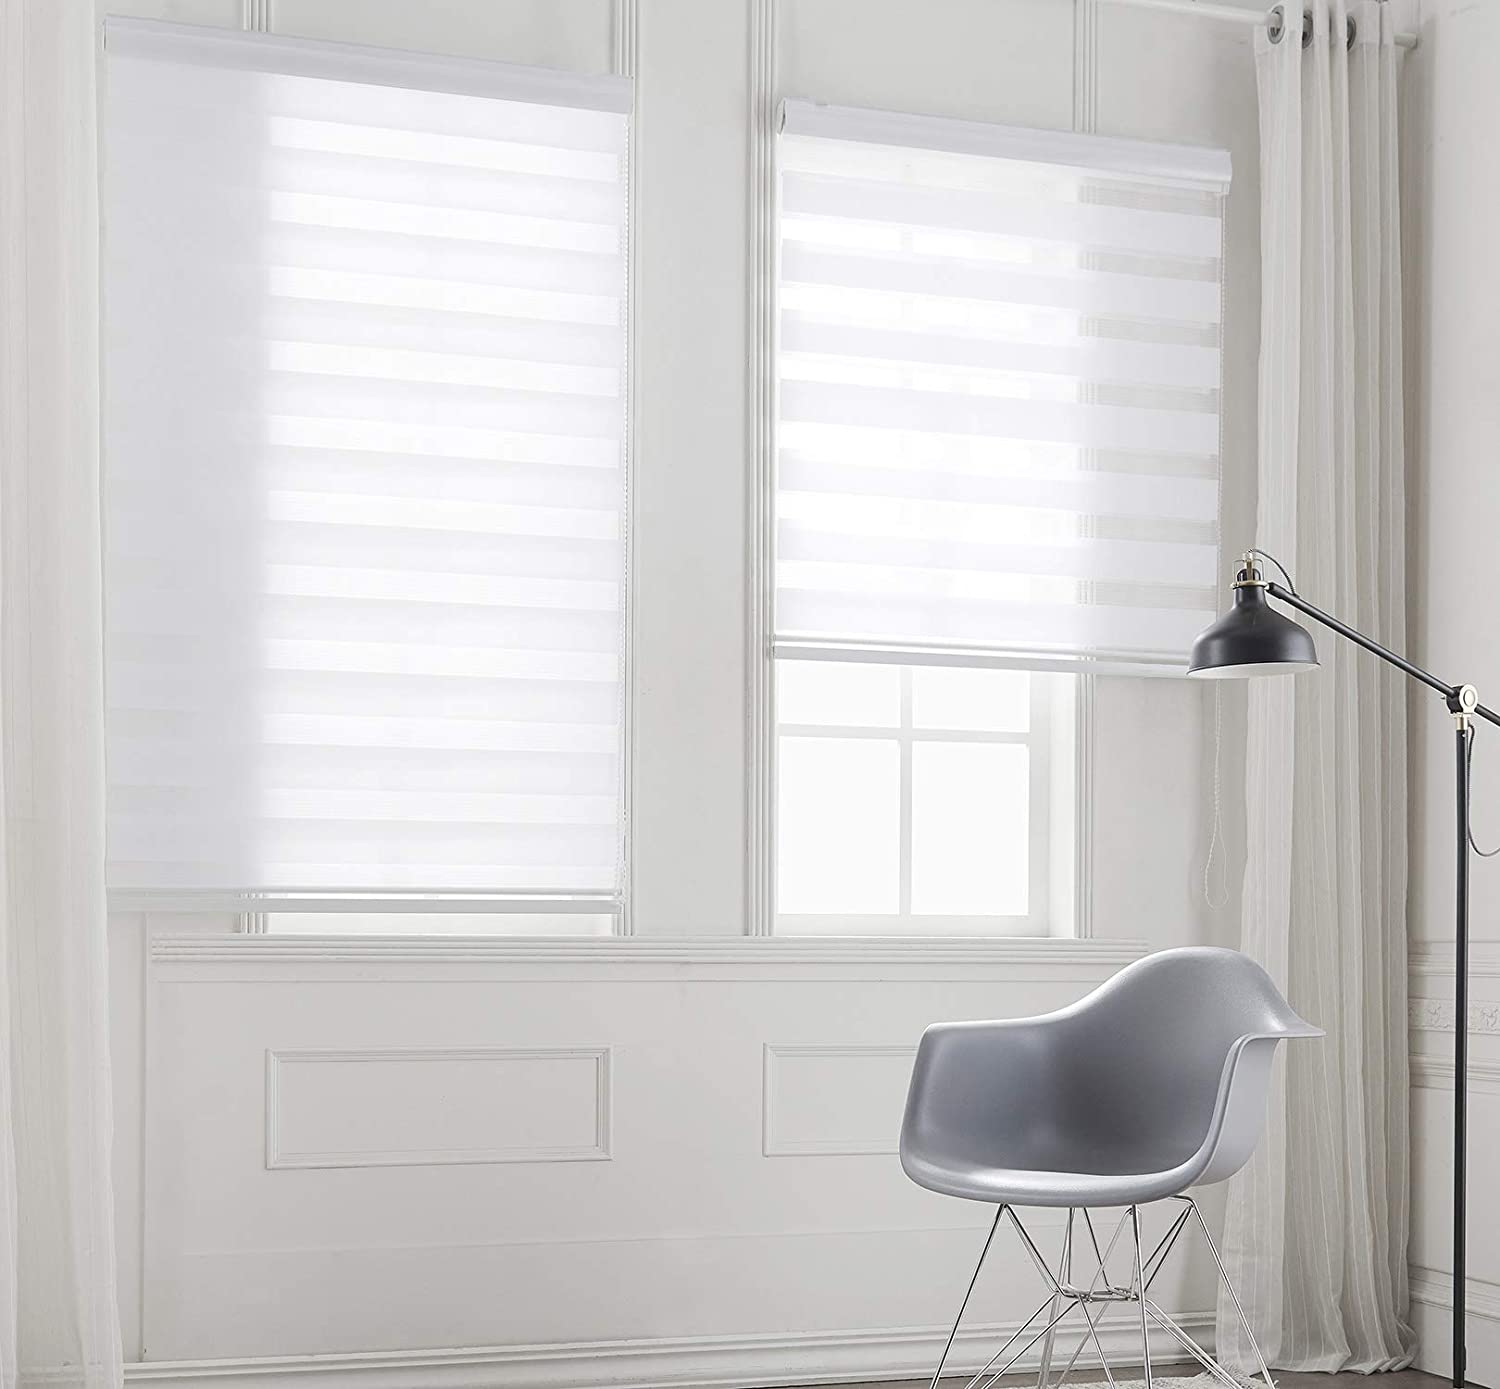 Taiyuhomes Day and Night Zebra Roller Blind Double Fabric Translucent or Blackout Vision Curtains for Window and Door with Aluminium Cassette(White 95x150) White 95x150cm(WxH)